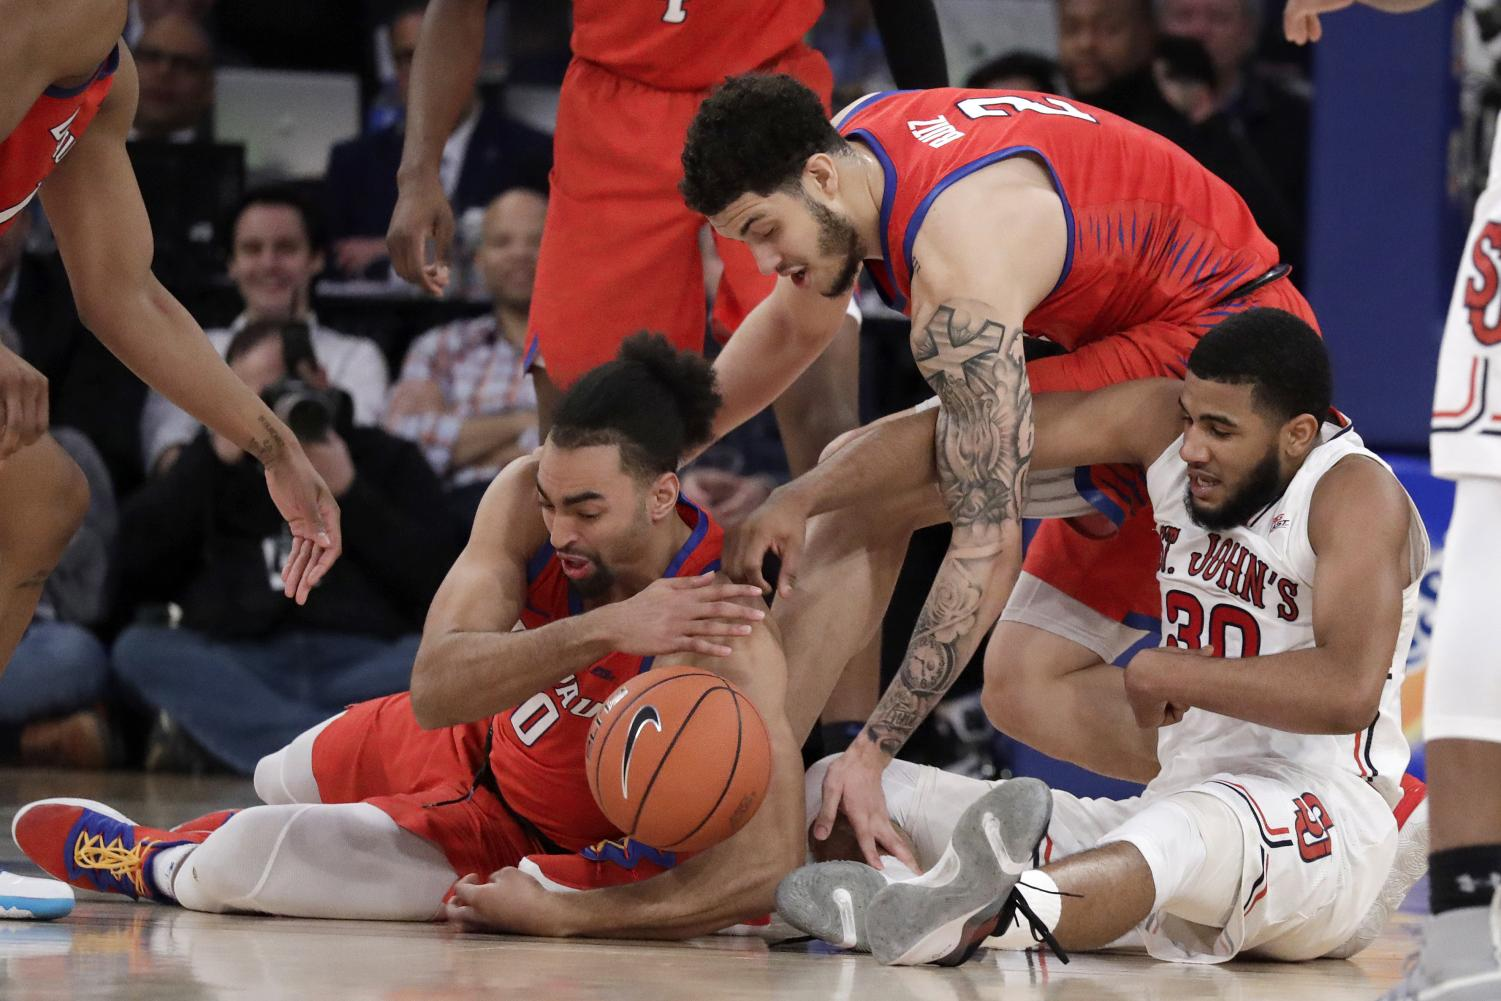 DePaul guard Lyrik Shreiner and sophomore forward Jaylen Butz scramble for a loose ball with St. John's guard LJ Figueroa during the second half of DePaul's Big East Tournament loss to the Red Storm. Julio Cortez | AP